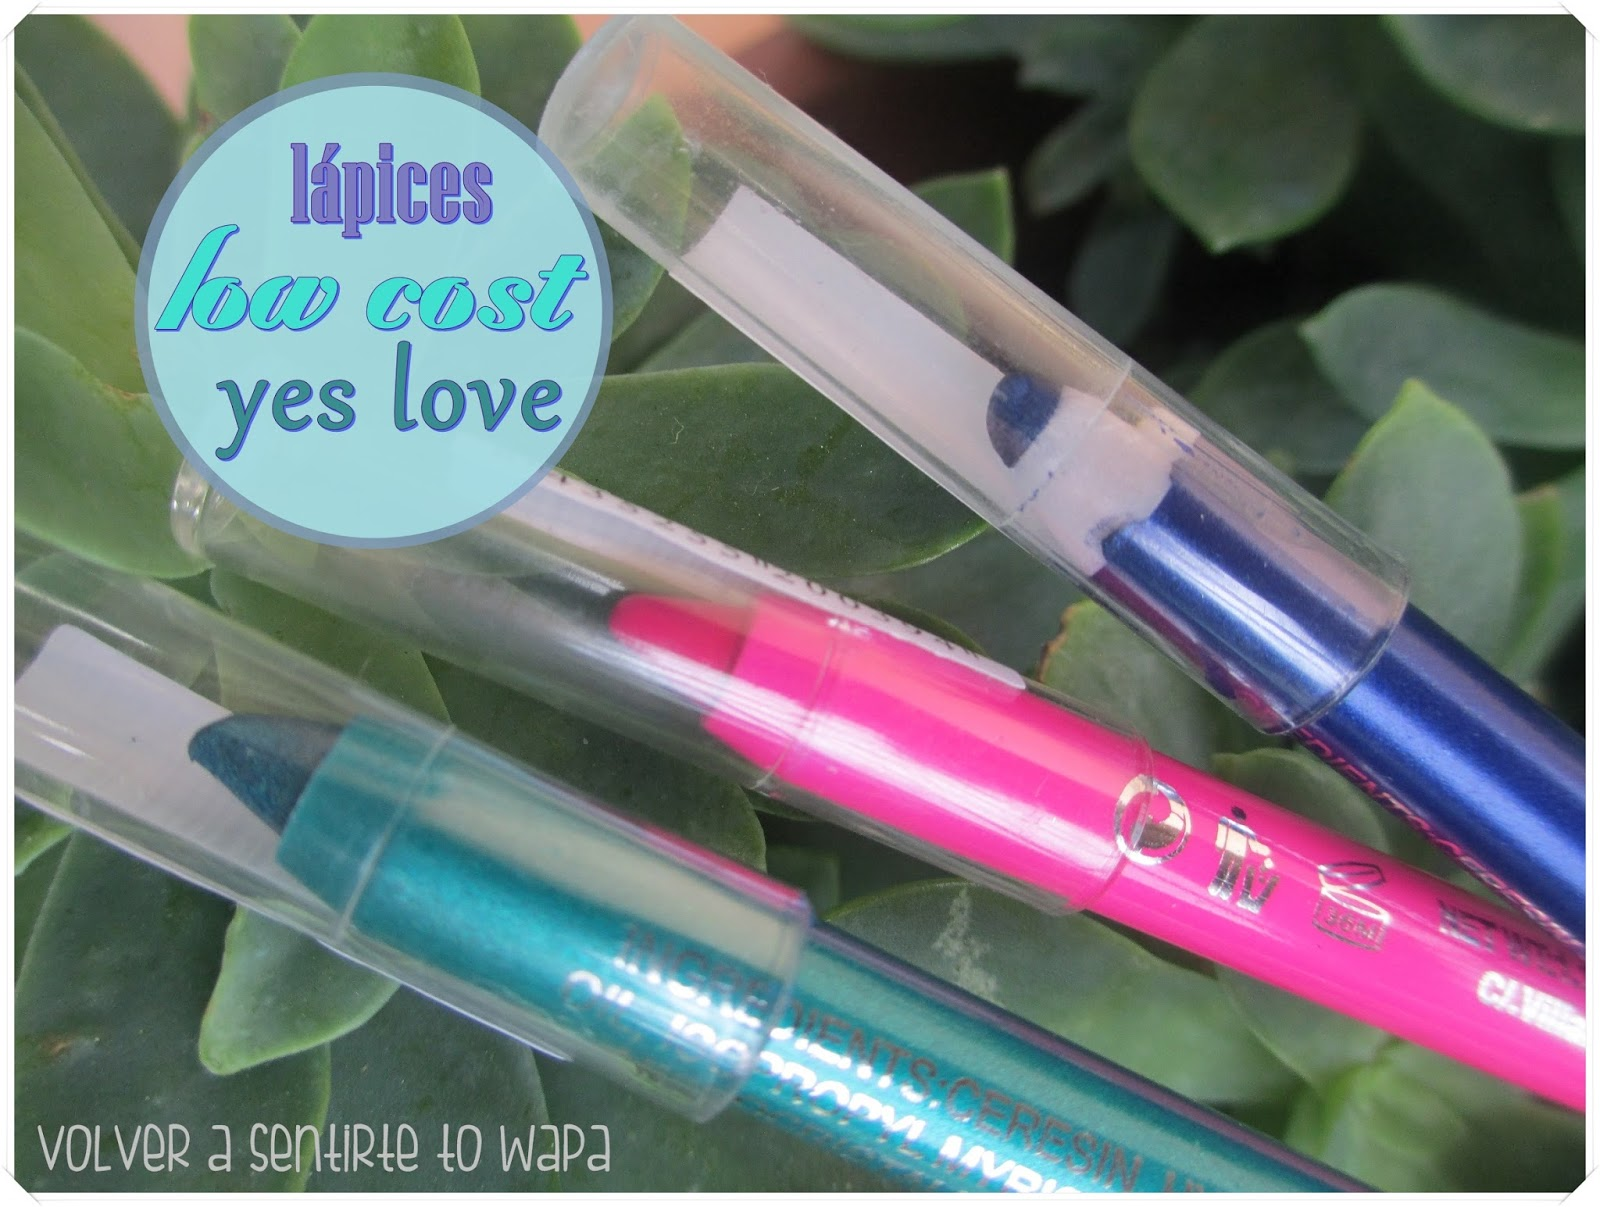 Lápices de Ojos Low Cost - Yes Love